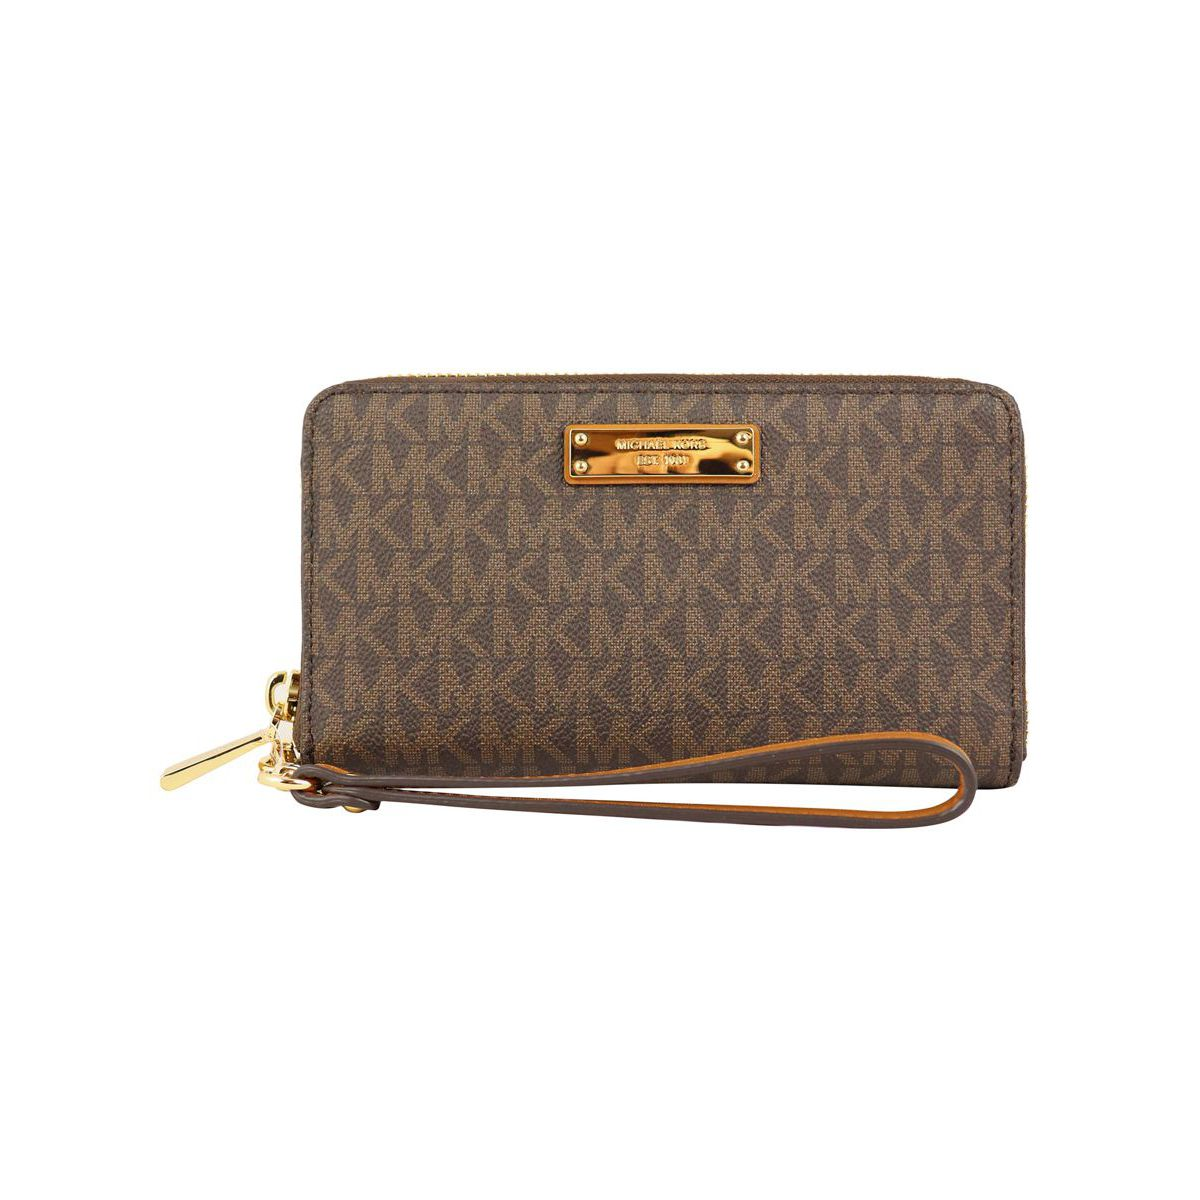 FLAT CASE wallet with detachable bracelet Brown Michael Kors